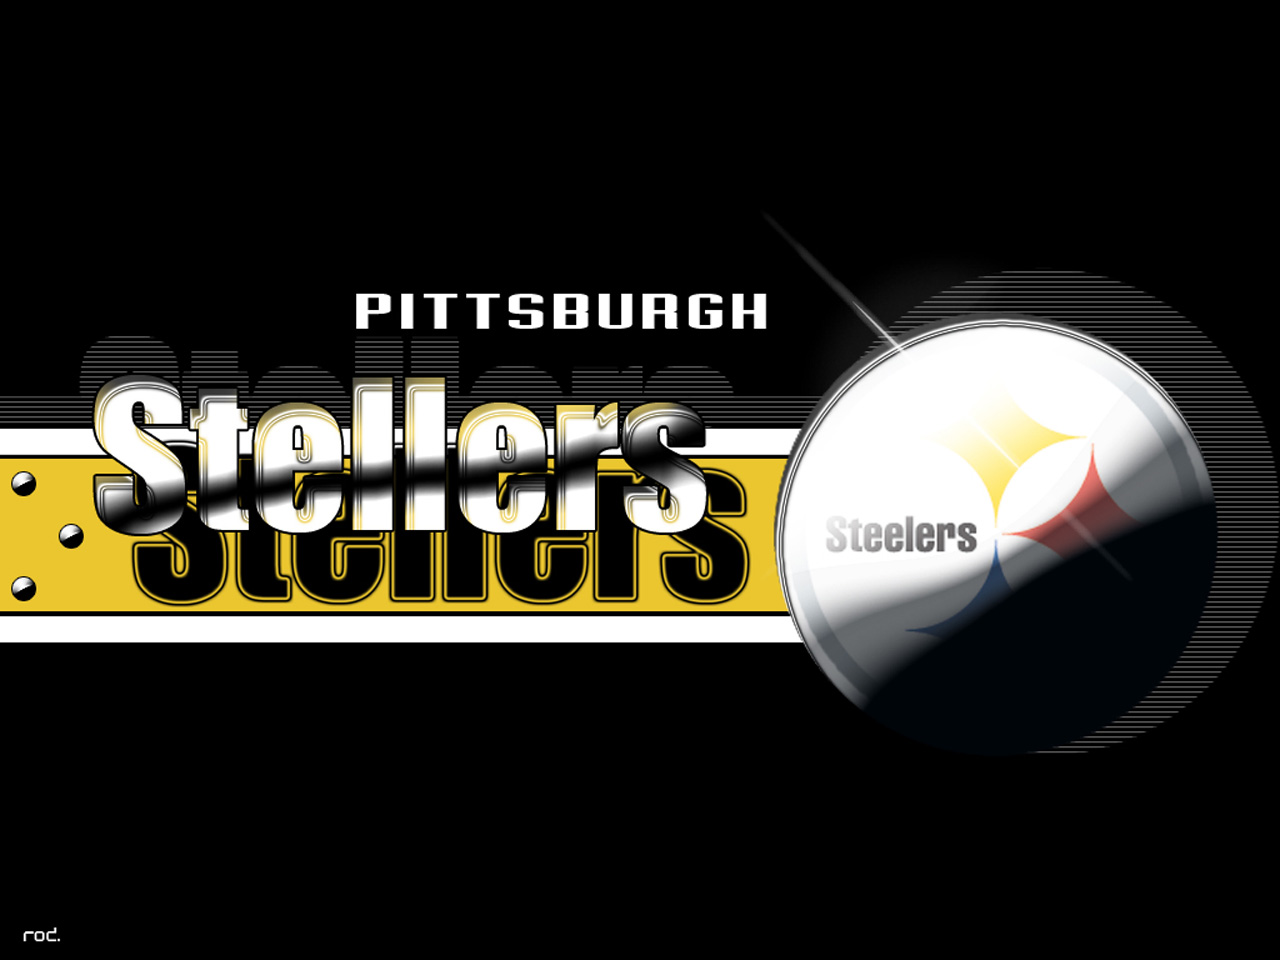 http://1.bp.blogspot.com/_SPY5-z18DBU/TS-d53TI1xI/AAAAAAAAAHE/kRUZl3CKo_4/s1600/steelers_widescreen_wallpaper_1280x960.jpeg